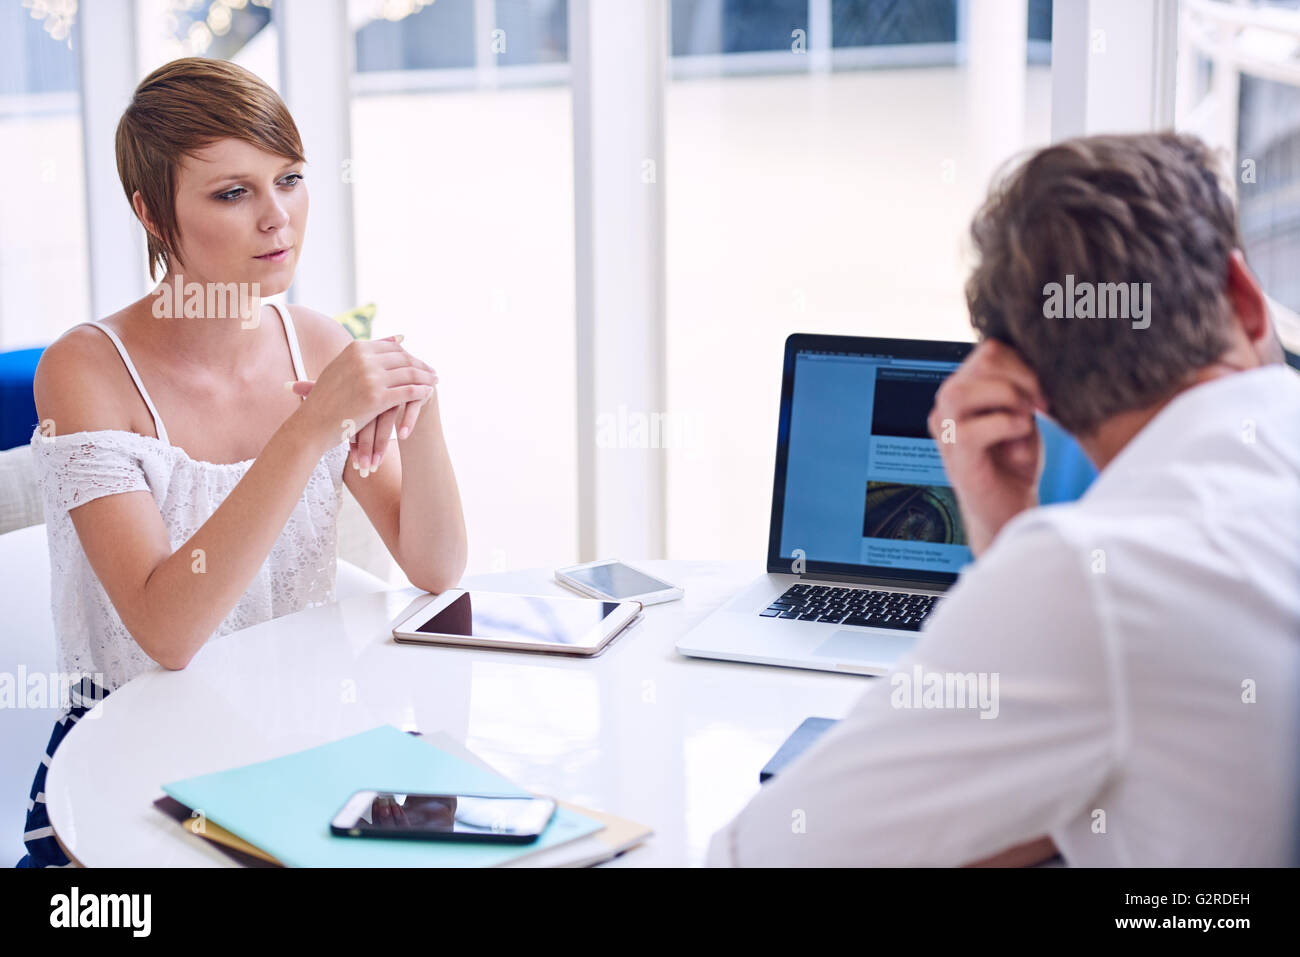 Apparent disagreement between male and female partners during business meeting - Stock Image